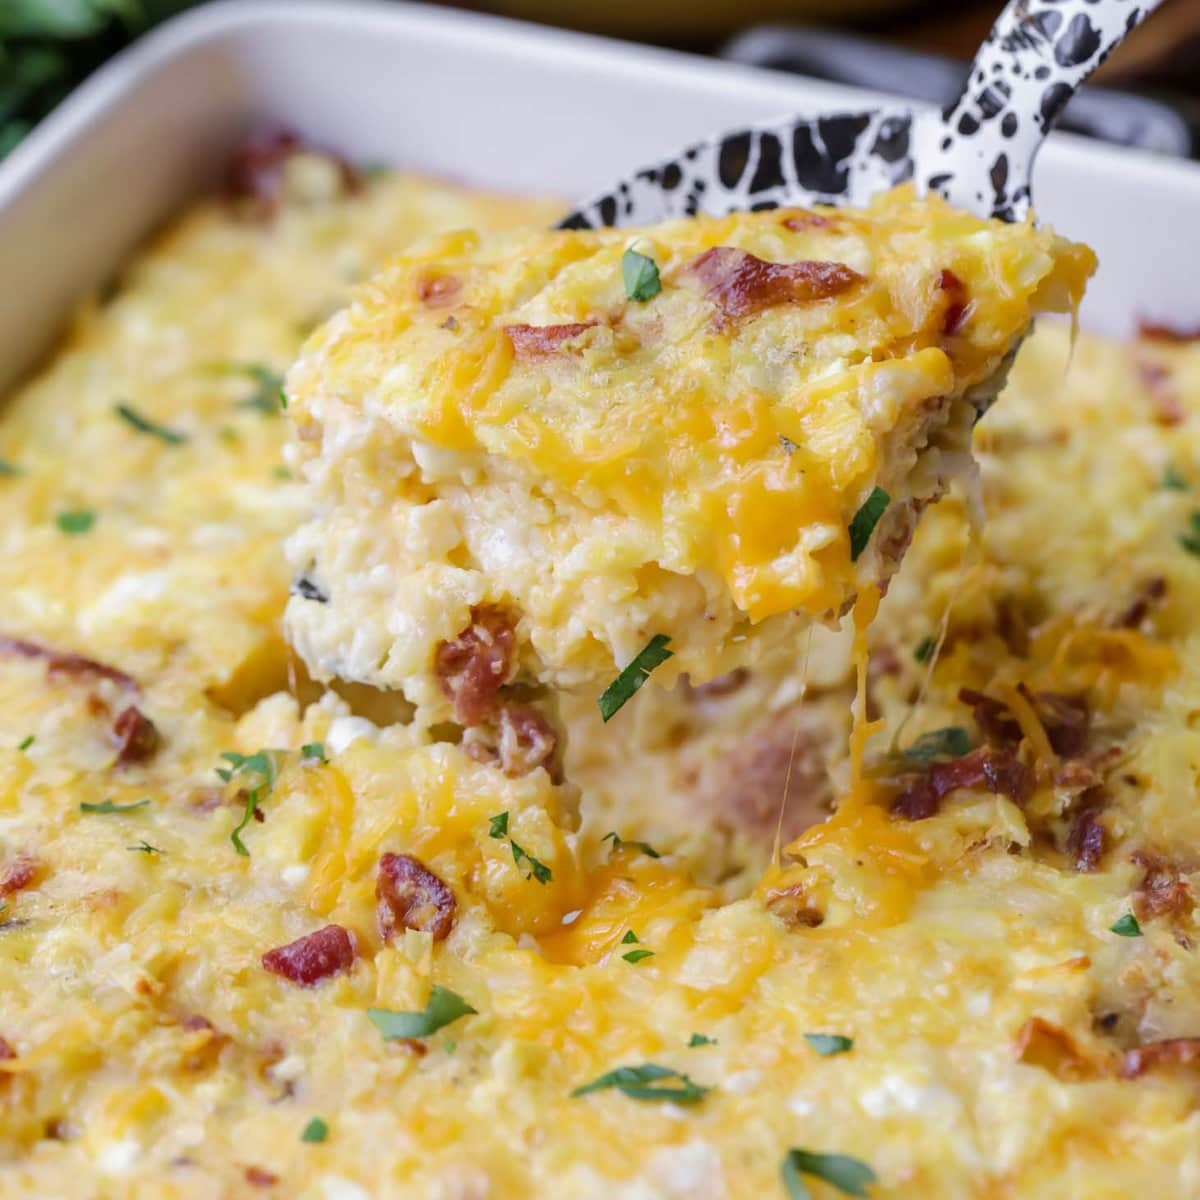 Hashbrown Breakfast Casserole scooped out